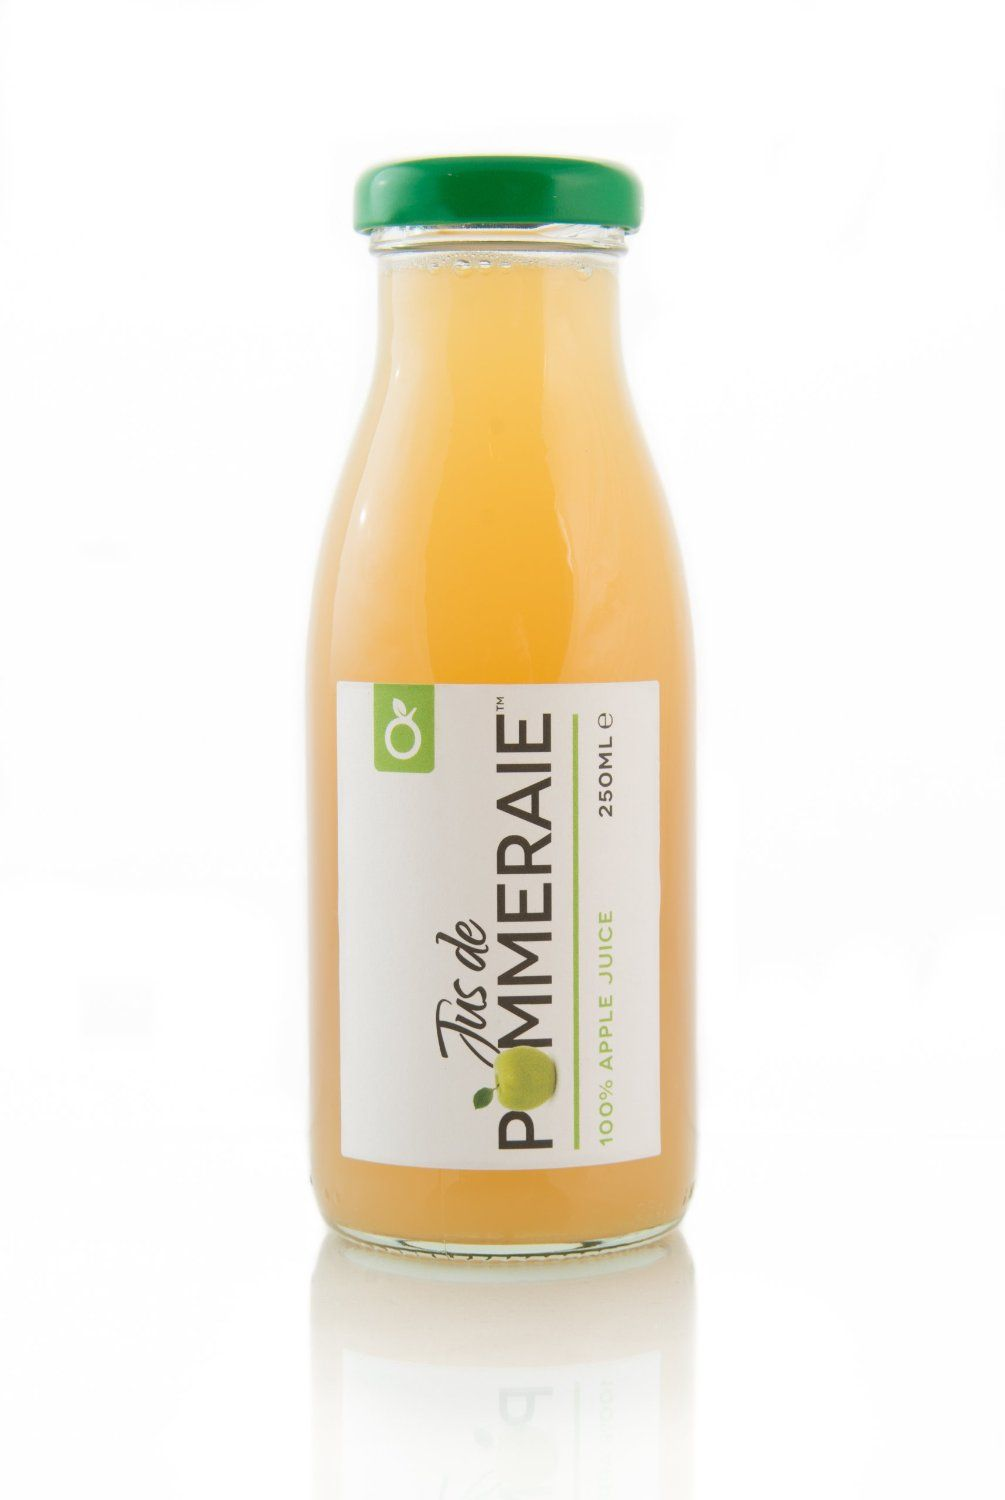 Idea by Milena Lopes on Juices Brands and Labels Juice